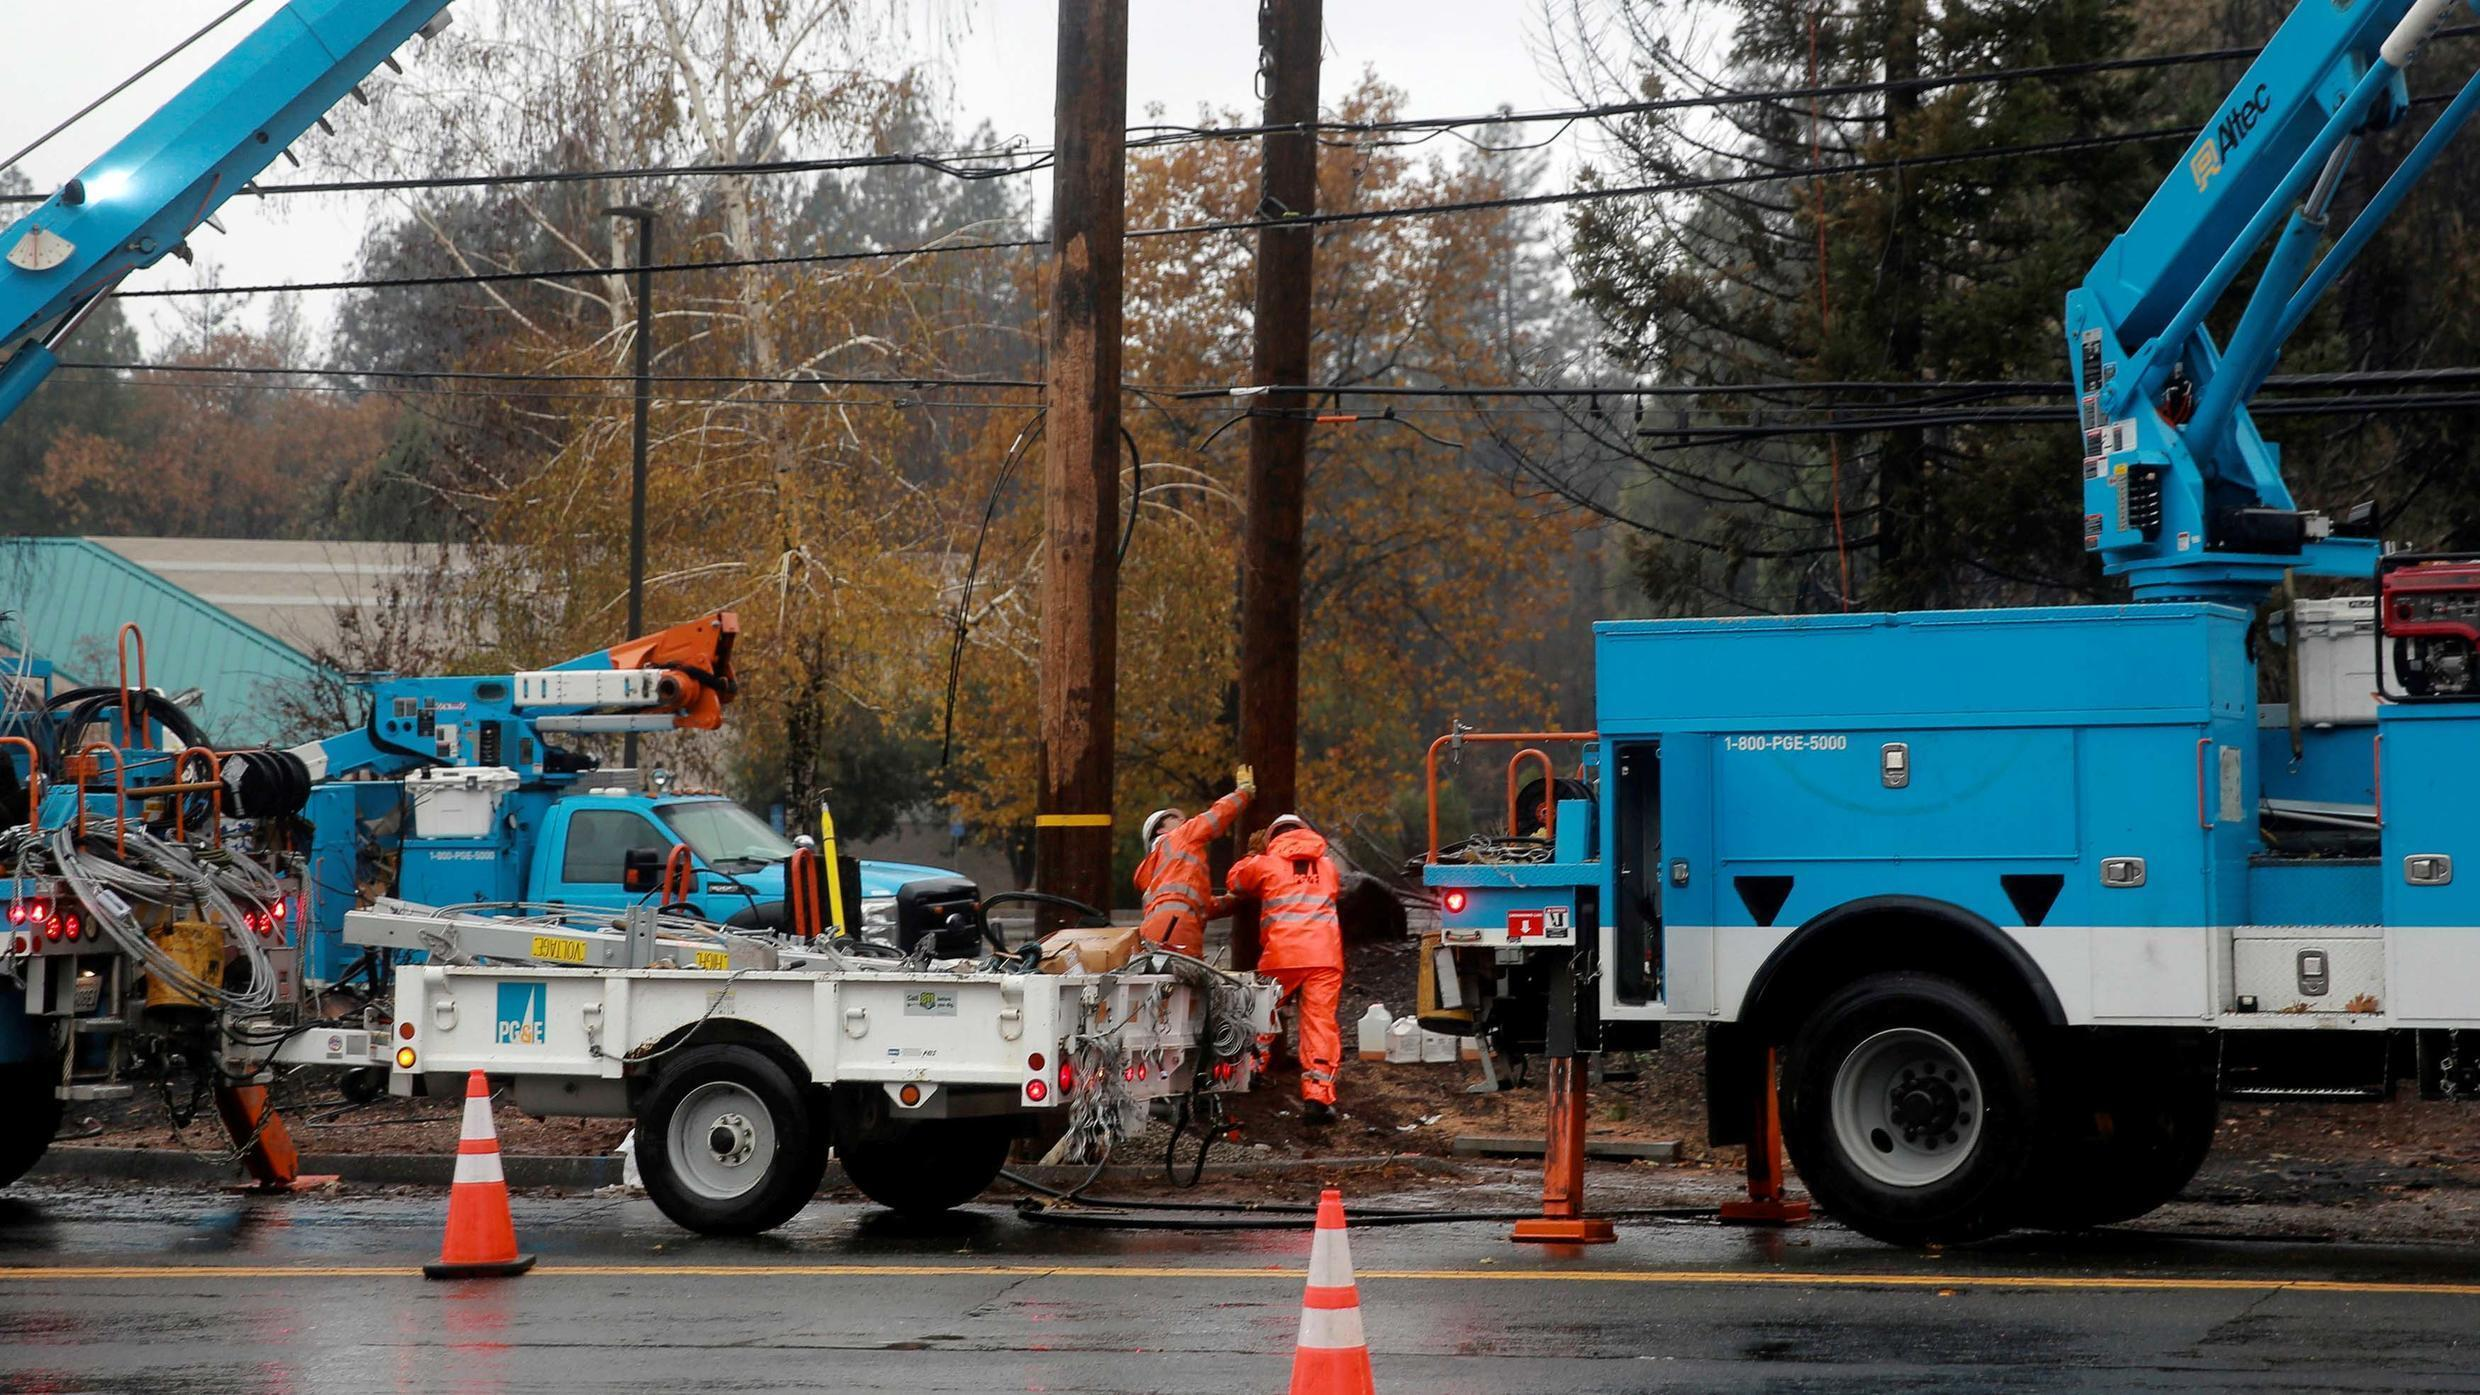 FILE PHOTO: PG&E works on power lines to repair damage caused by the Camp Fire in Paradise, California, U.S. November 21, 2018.